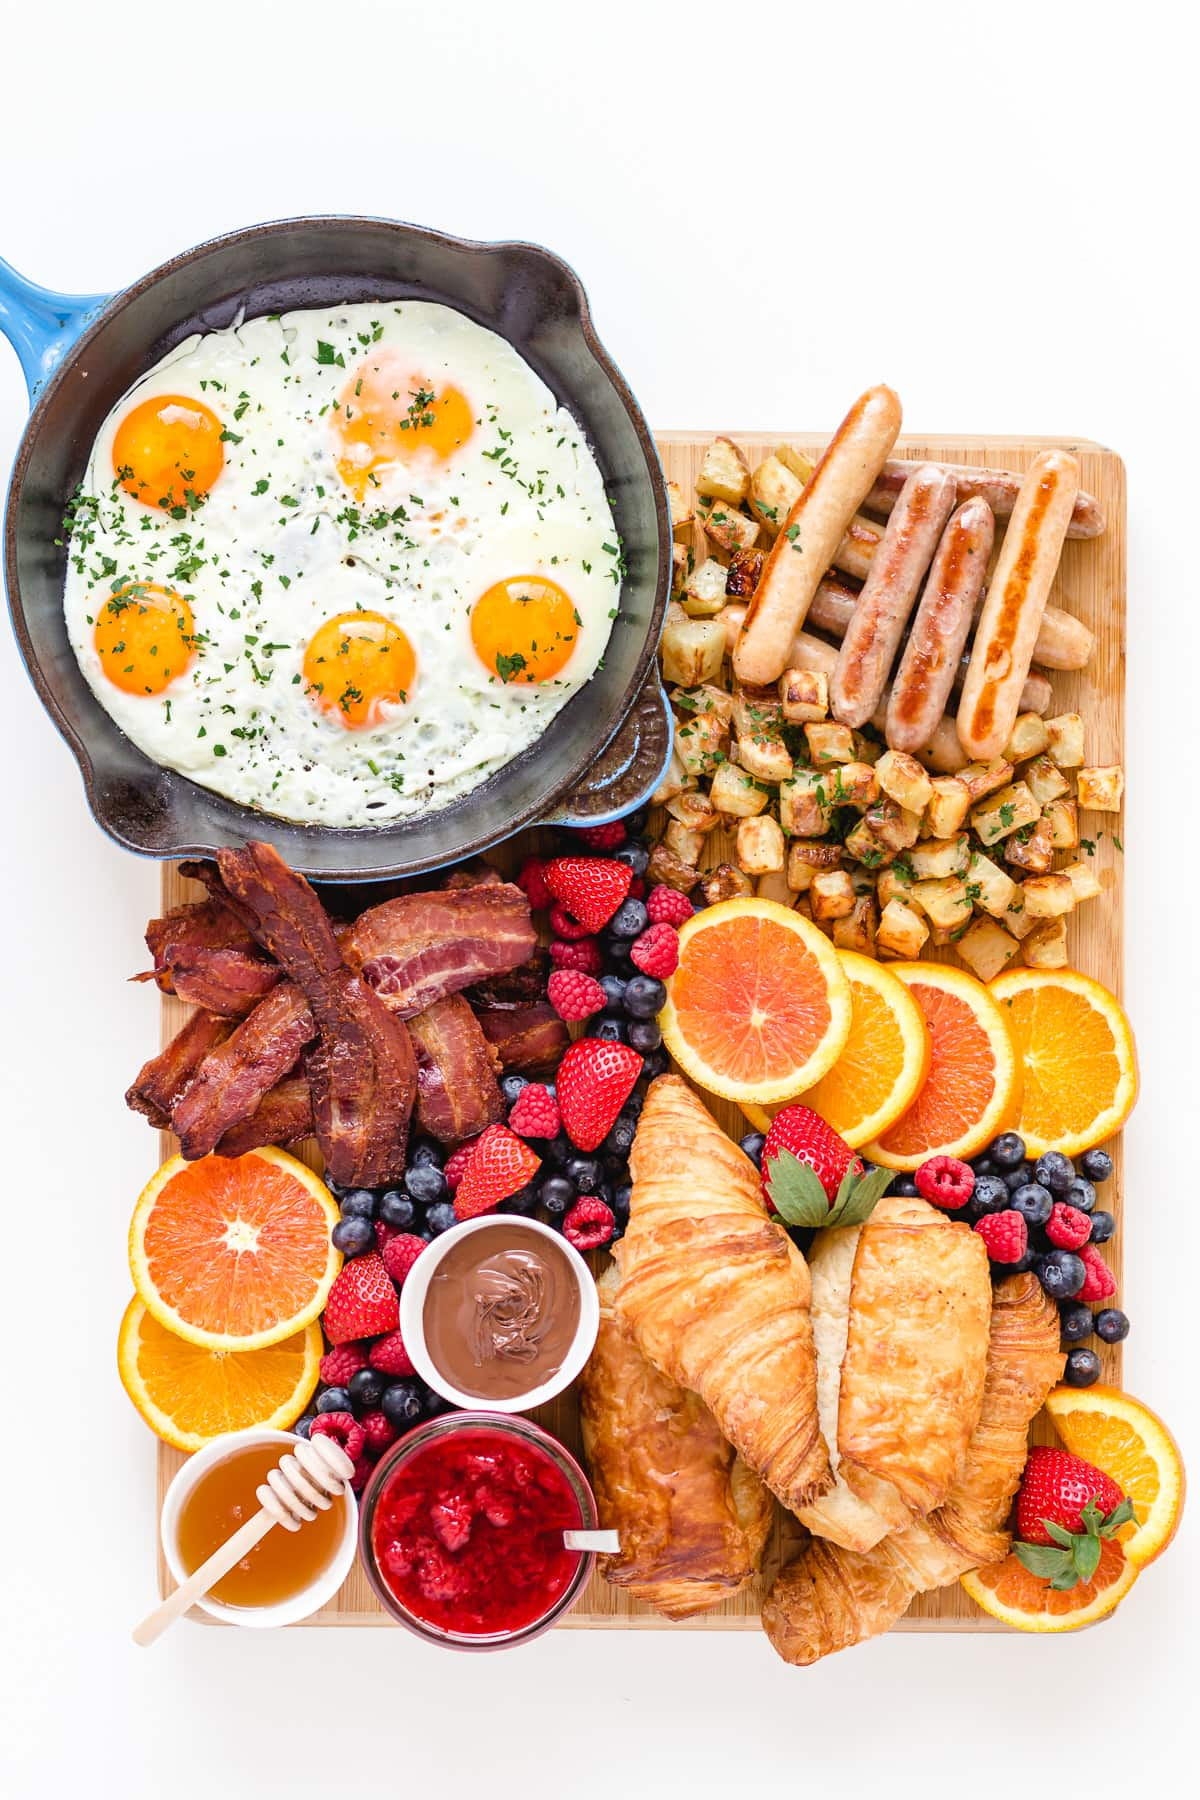 Bacon and eggs breakfast grazing board featuring fried eggs, bacon, breakfast sausages, croissants, hash browns, fresh fruit and spreads.